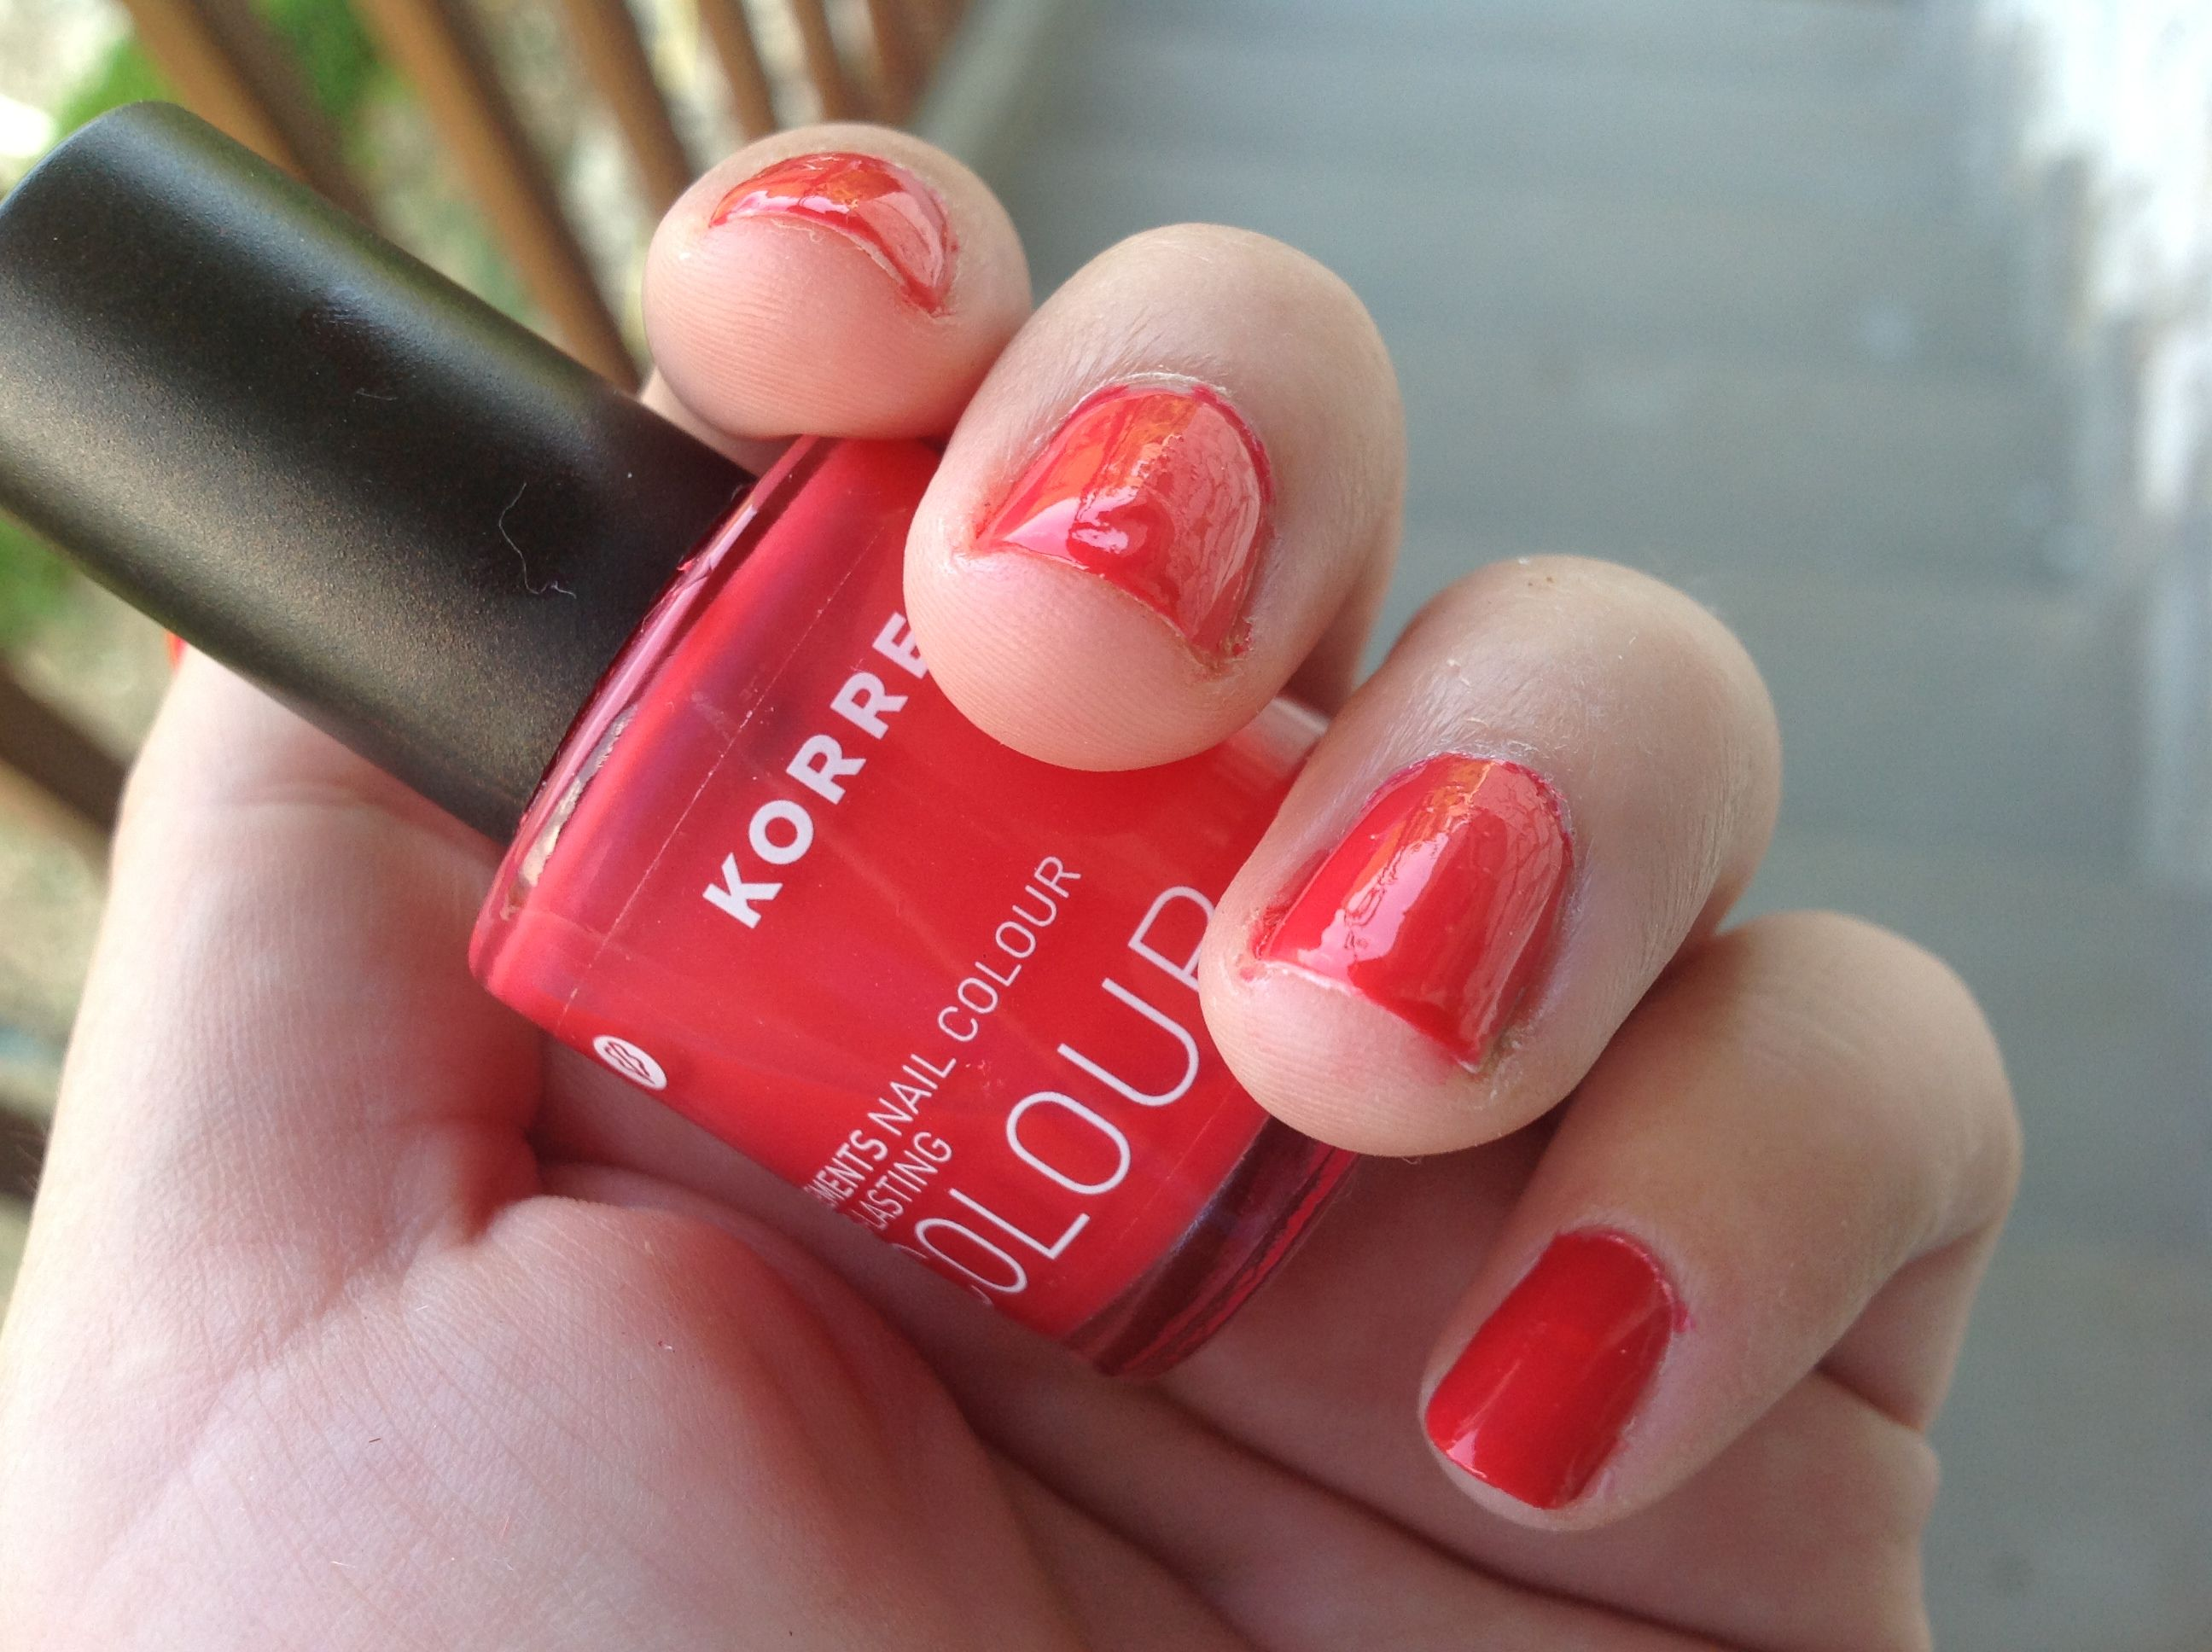 Korres Nail Colour in coral pink!!! <3   Nails!   Pinterest   Manicure